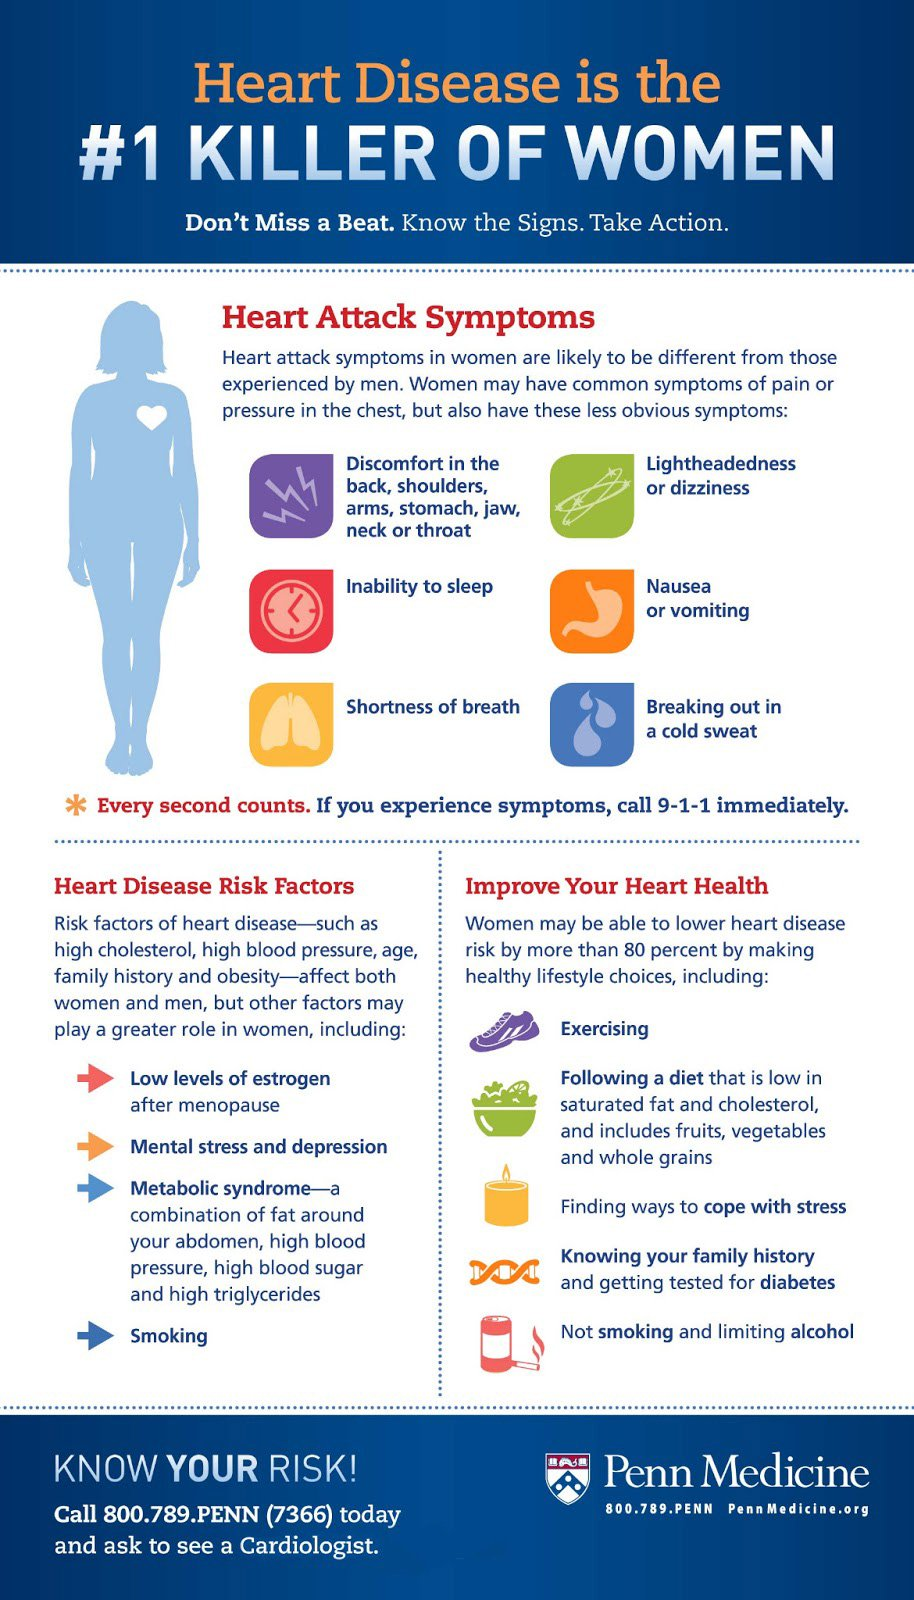 The igns and symptoms of a heart attack and all the necessary information about it specifically for women infographic.